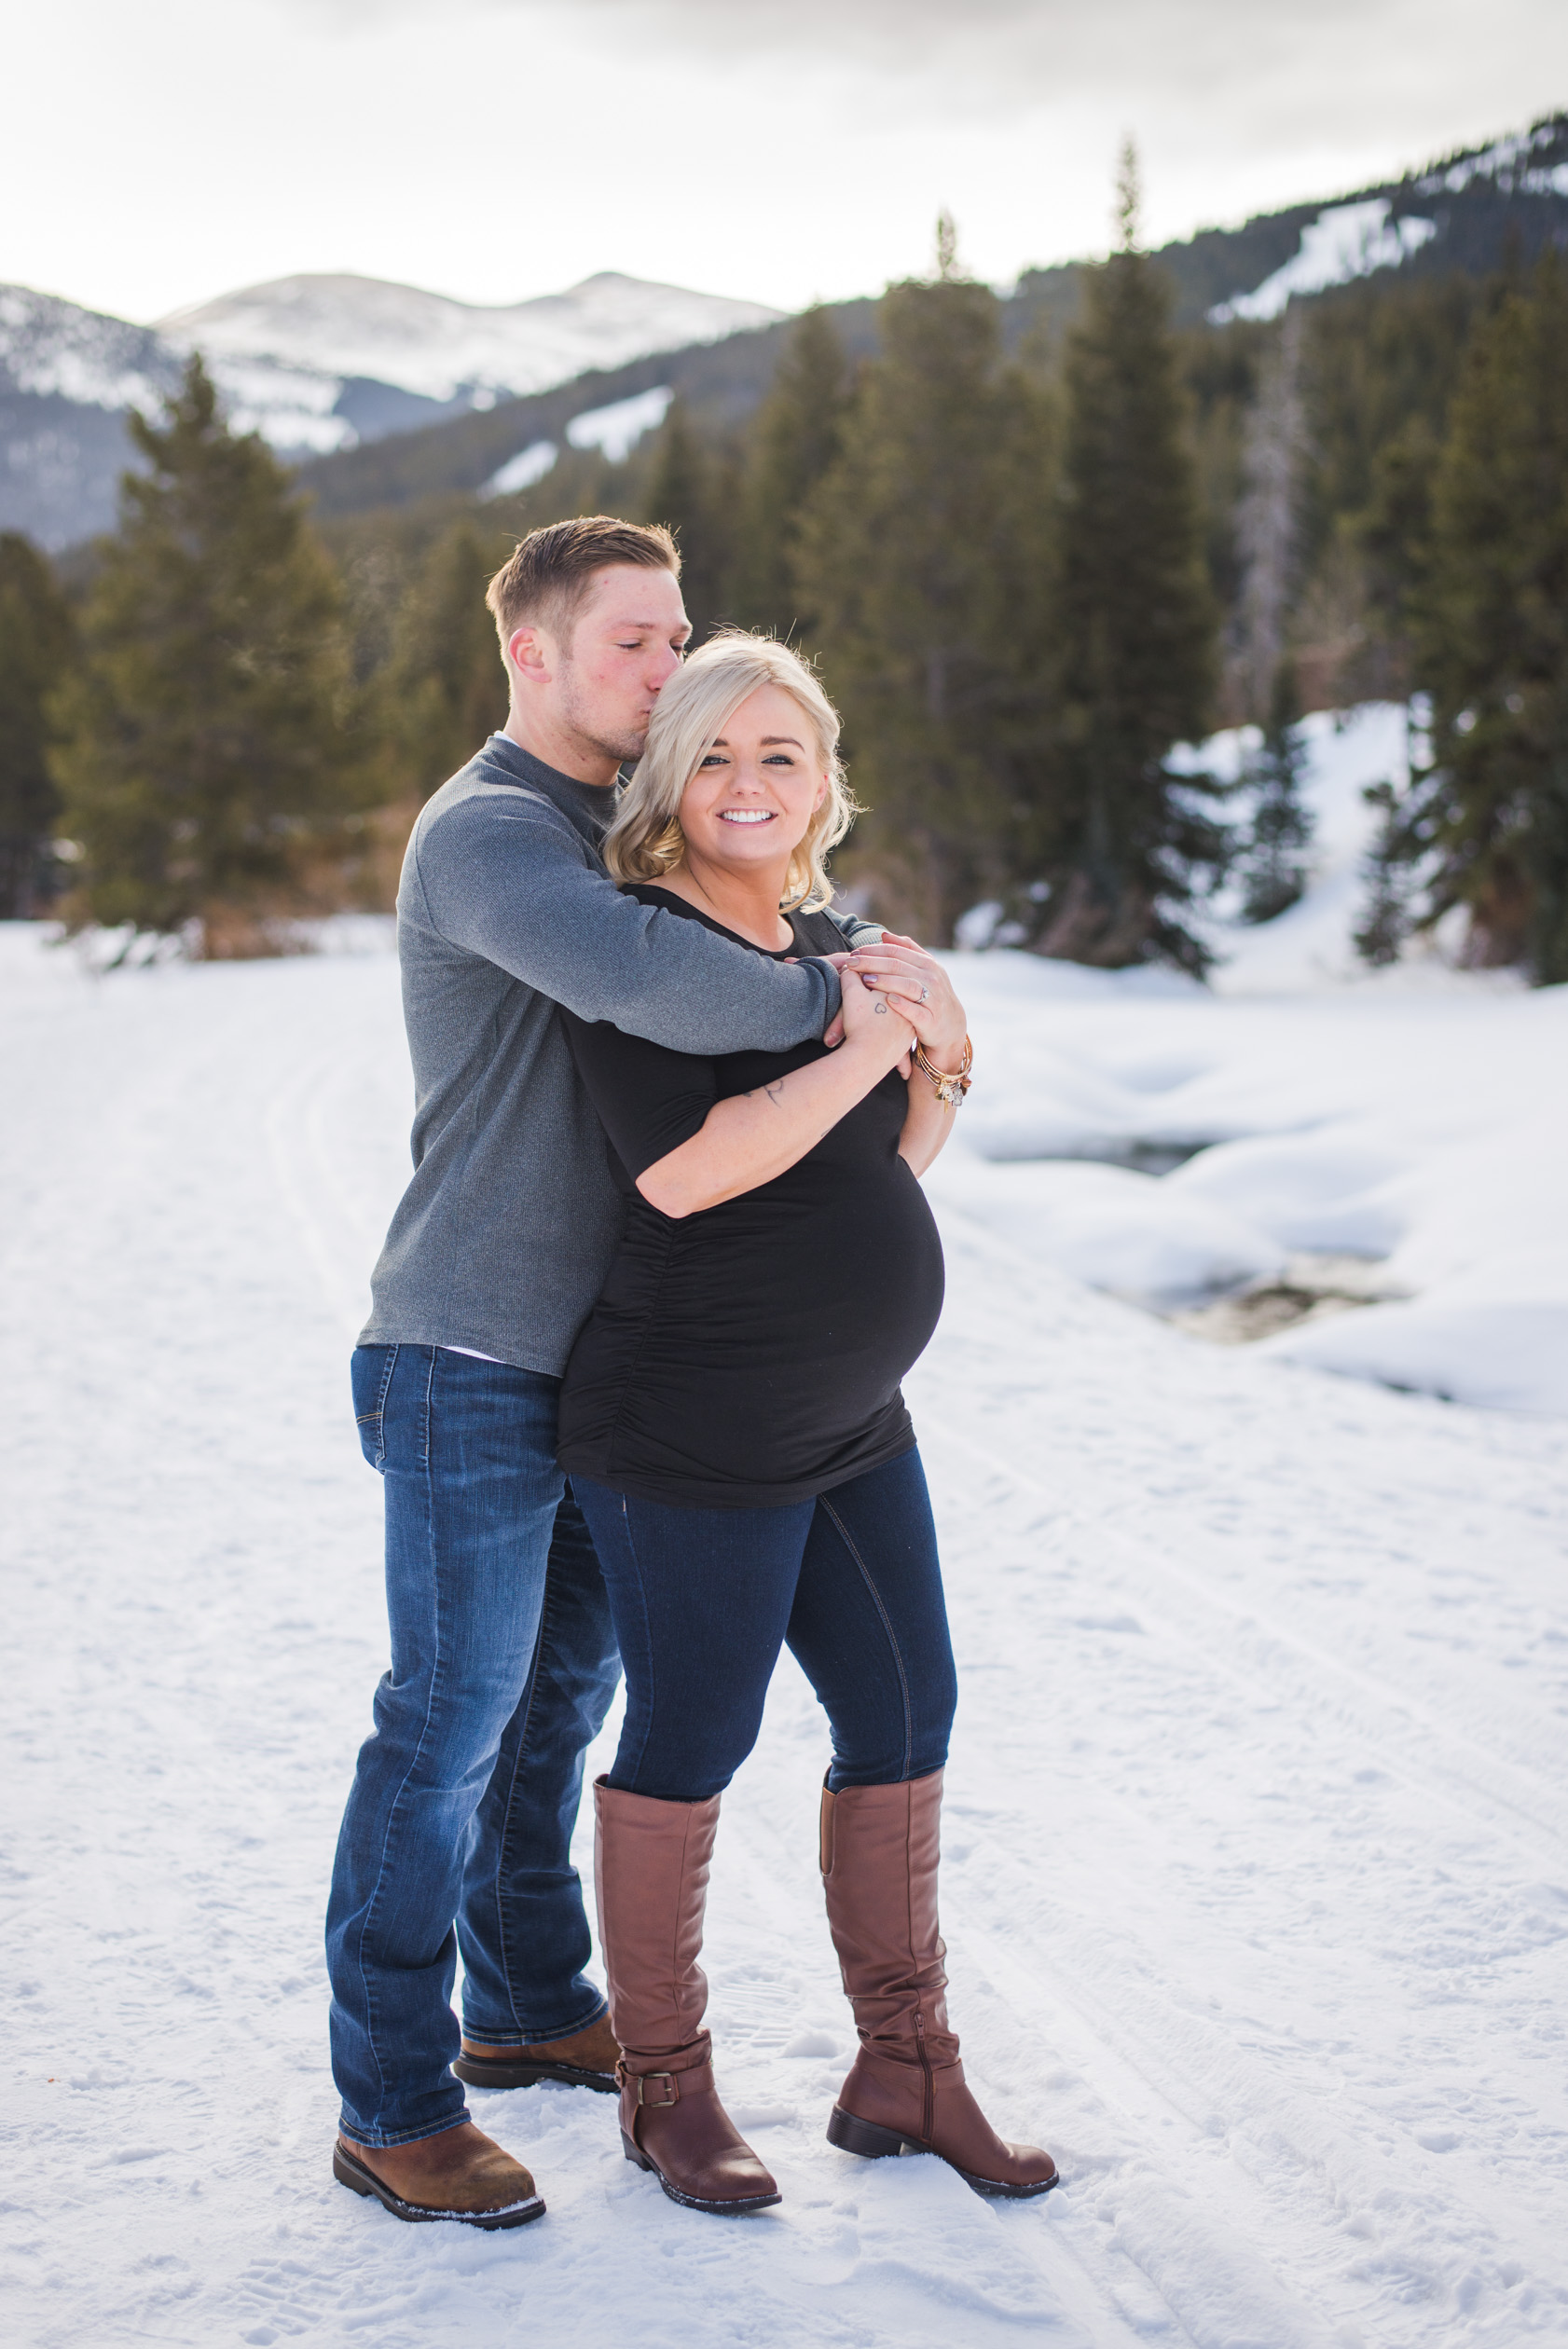 Maternity portrait session in Copper Mountain, Colorado | Selecting the Right Location | Keeping Composure Photography